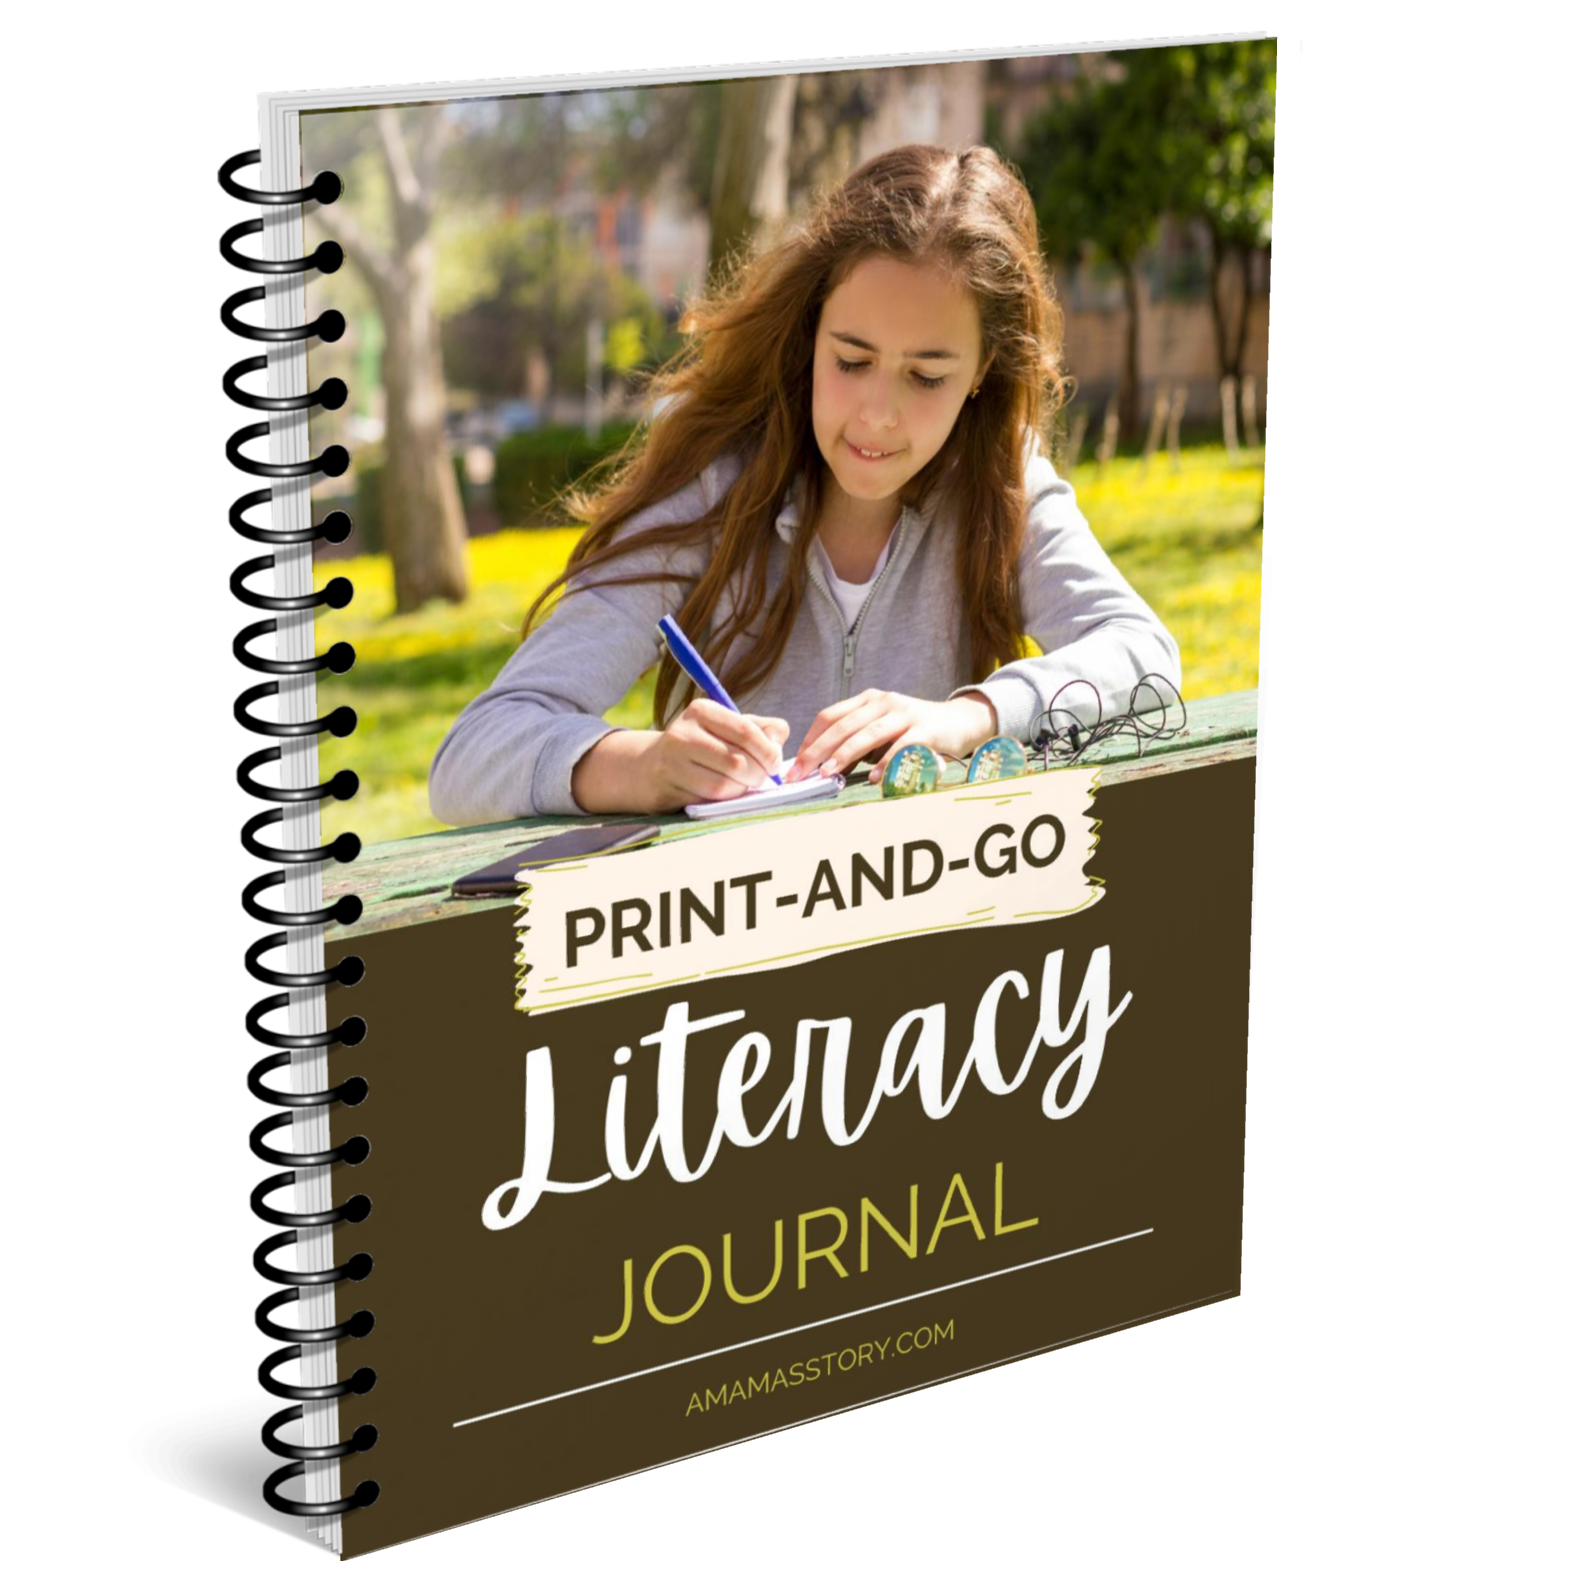 Print and go literacy journal.